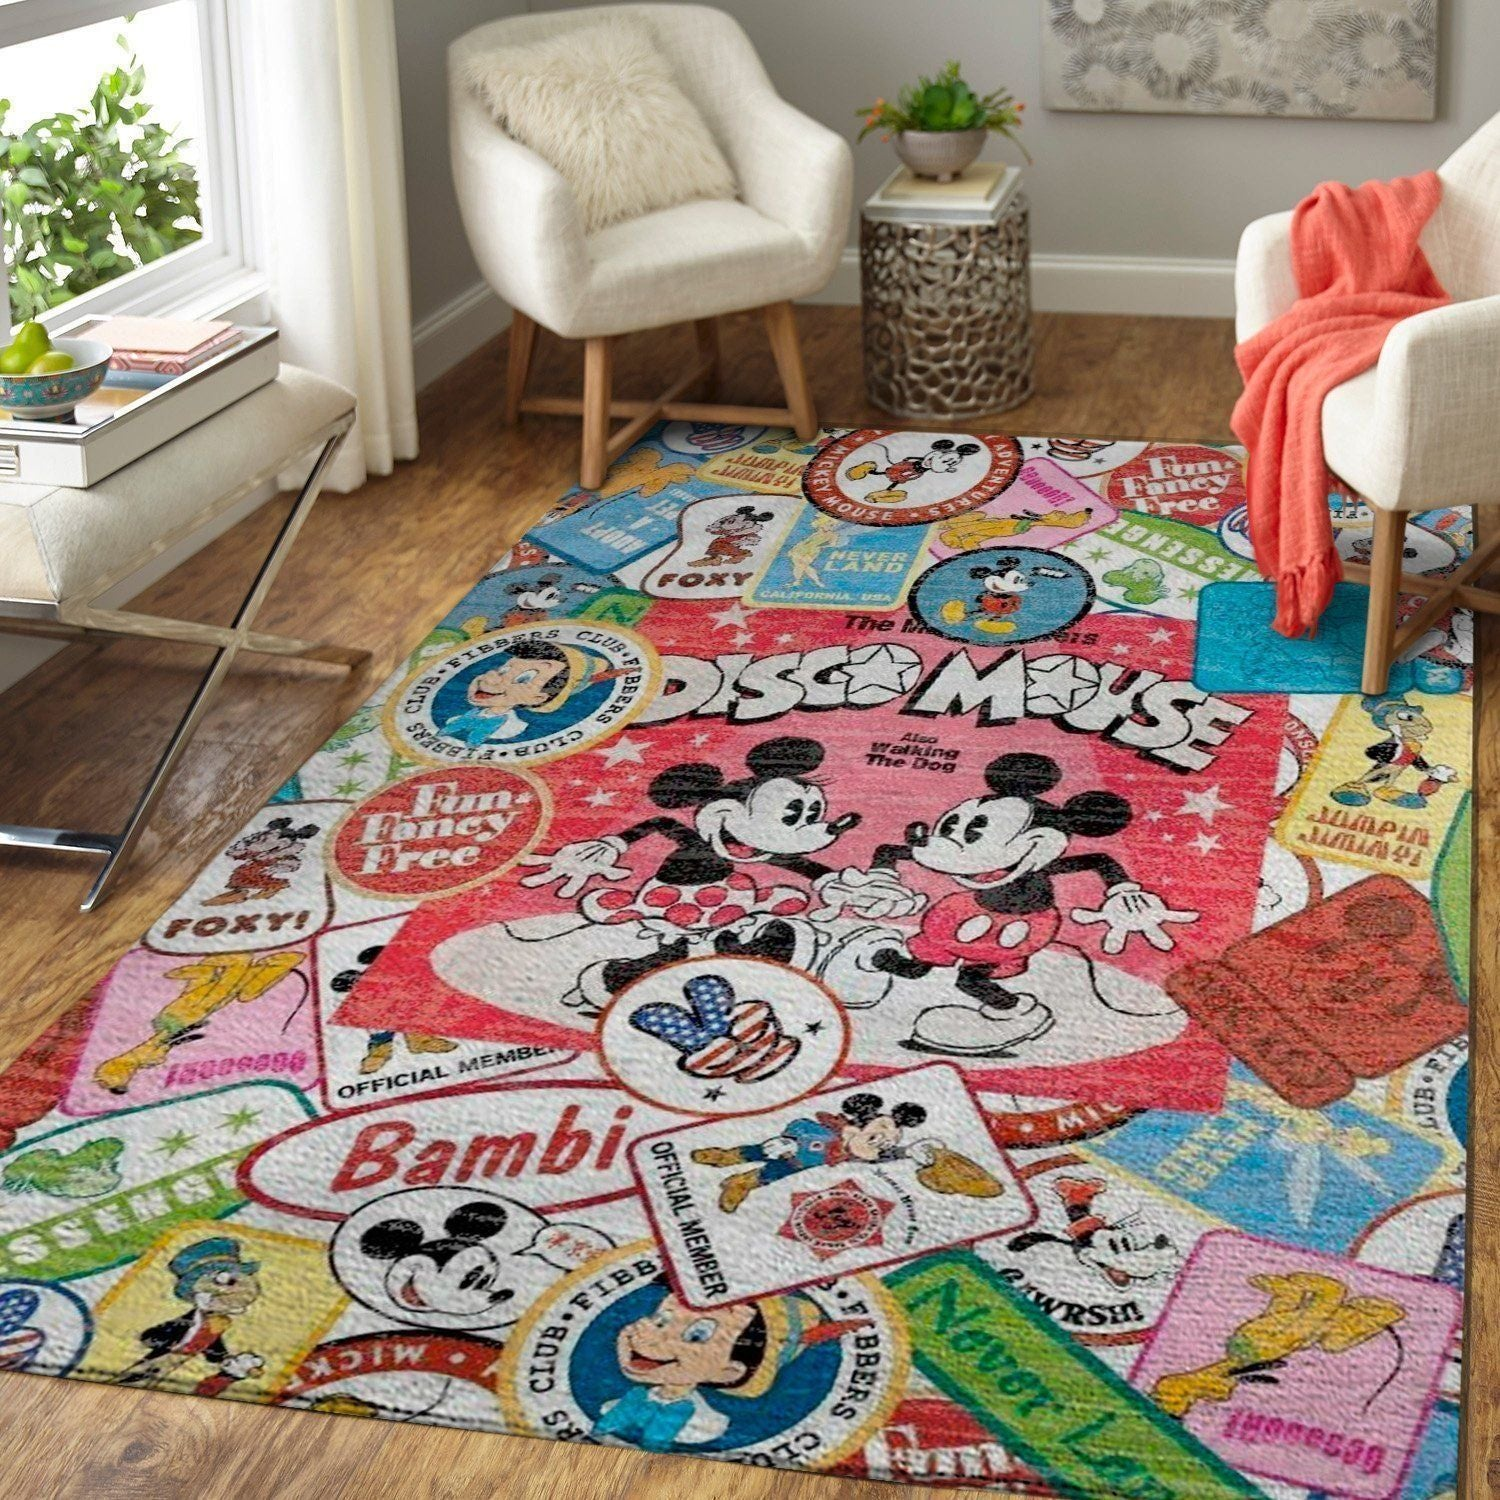 Mickey Mouse Area Rugs, Disney Movie Living Room Carpet, Custom Floor Decor - Disco Mouse 1910213